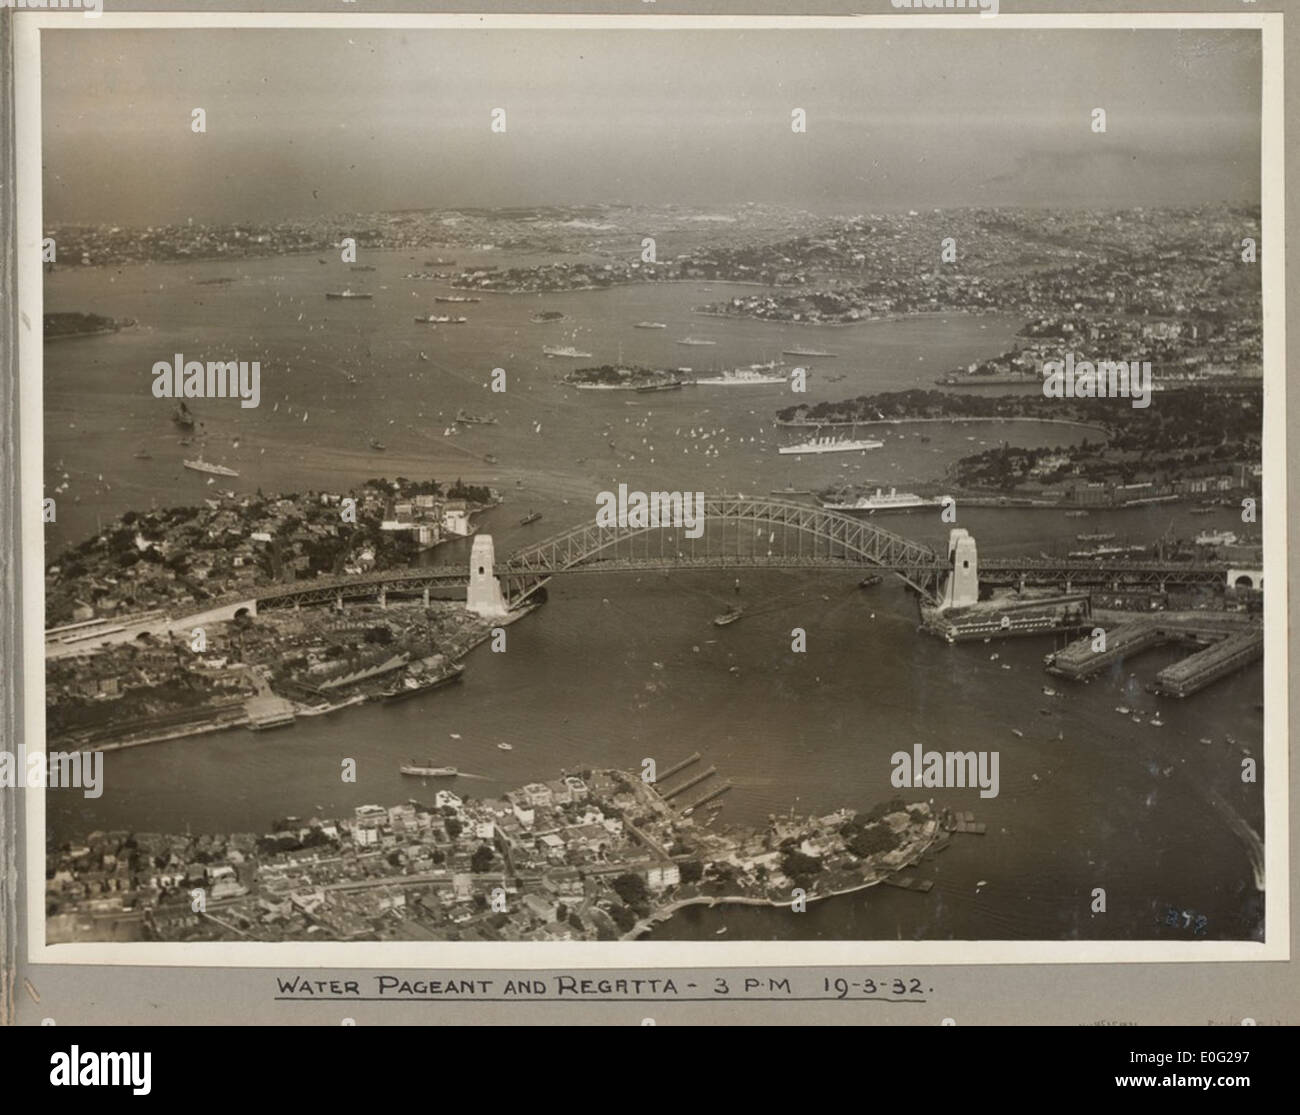 Water pageant and regatta at Sydney Harbour Bridge, 19 March 1932 - Stock Image